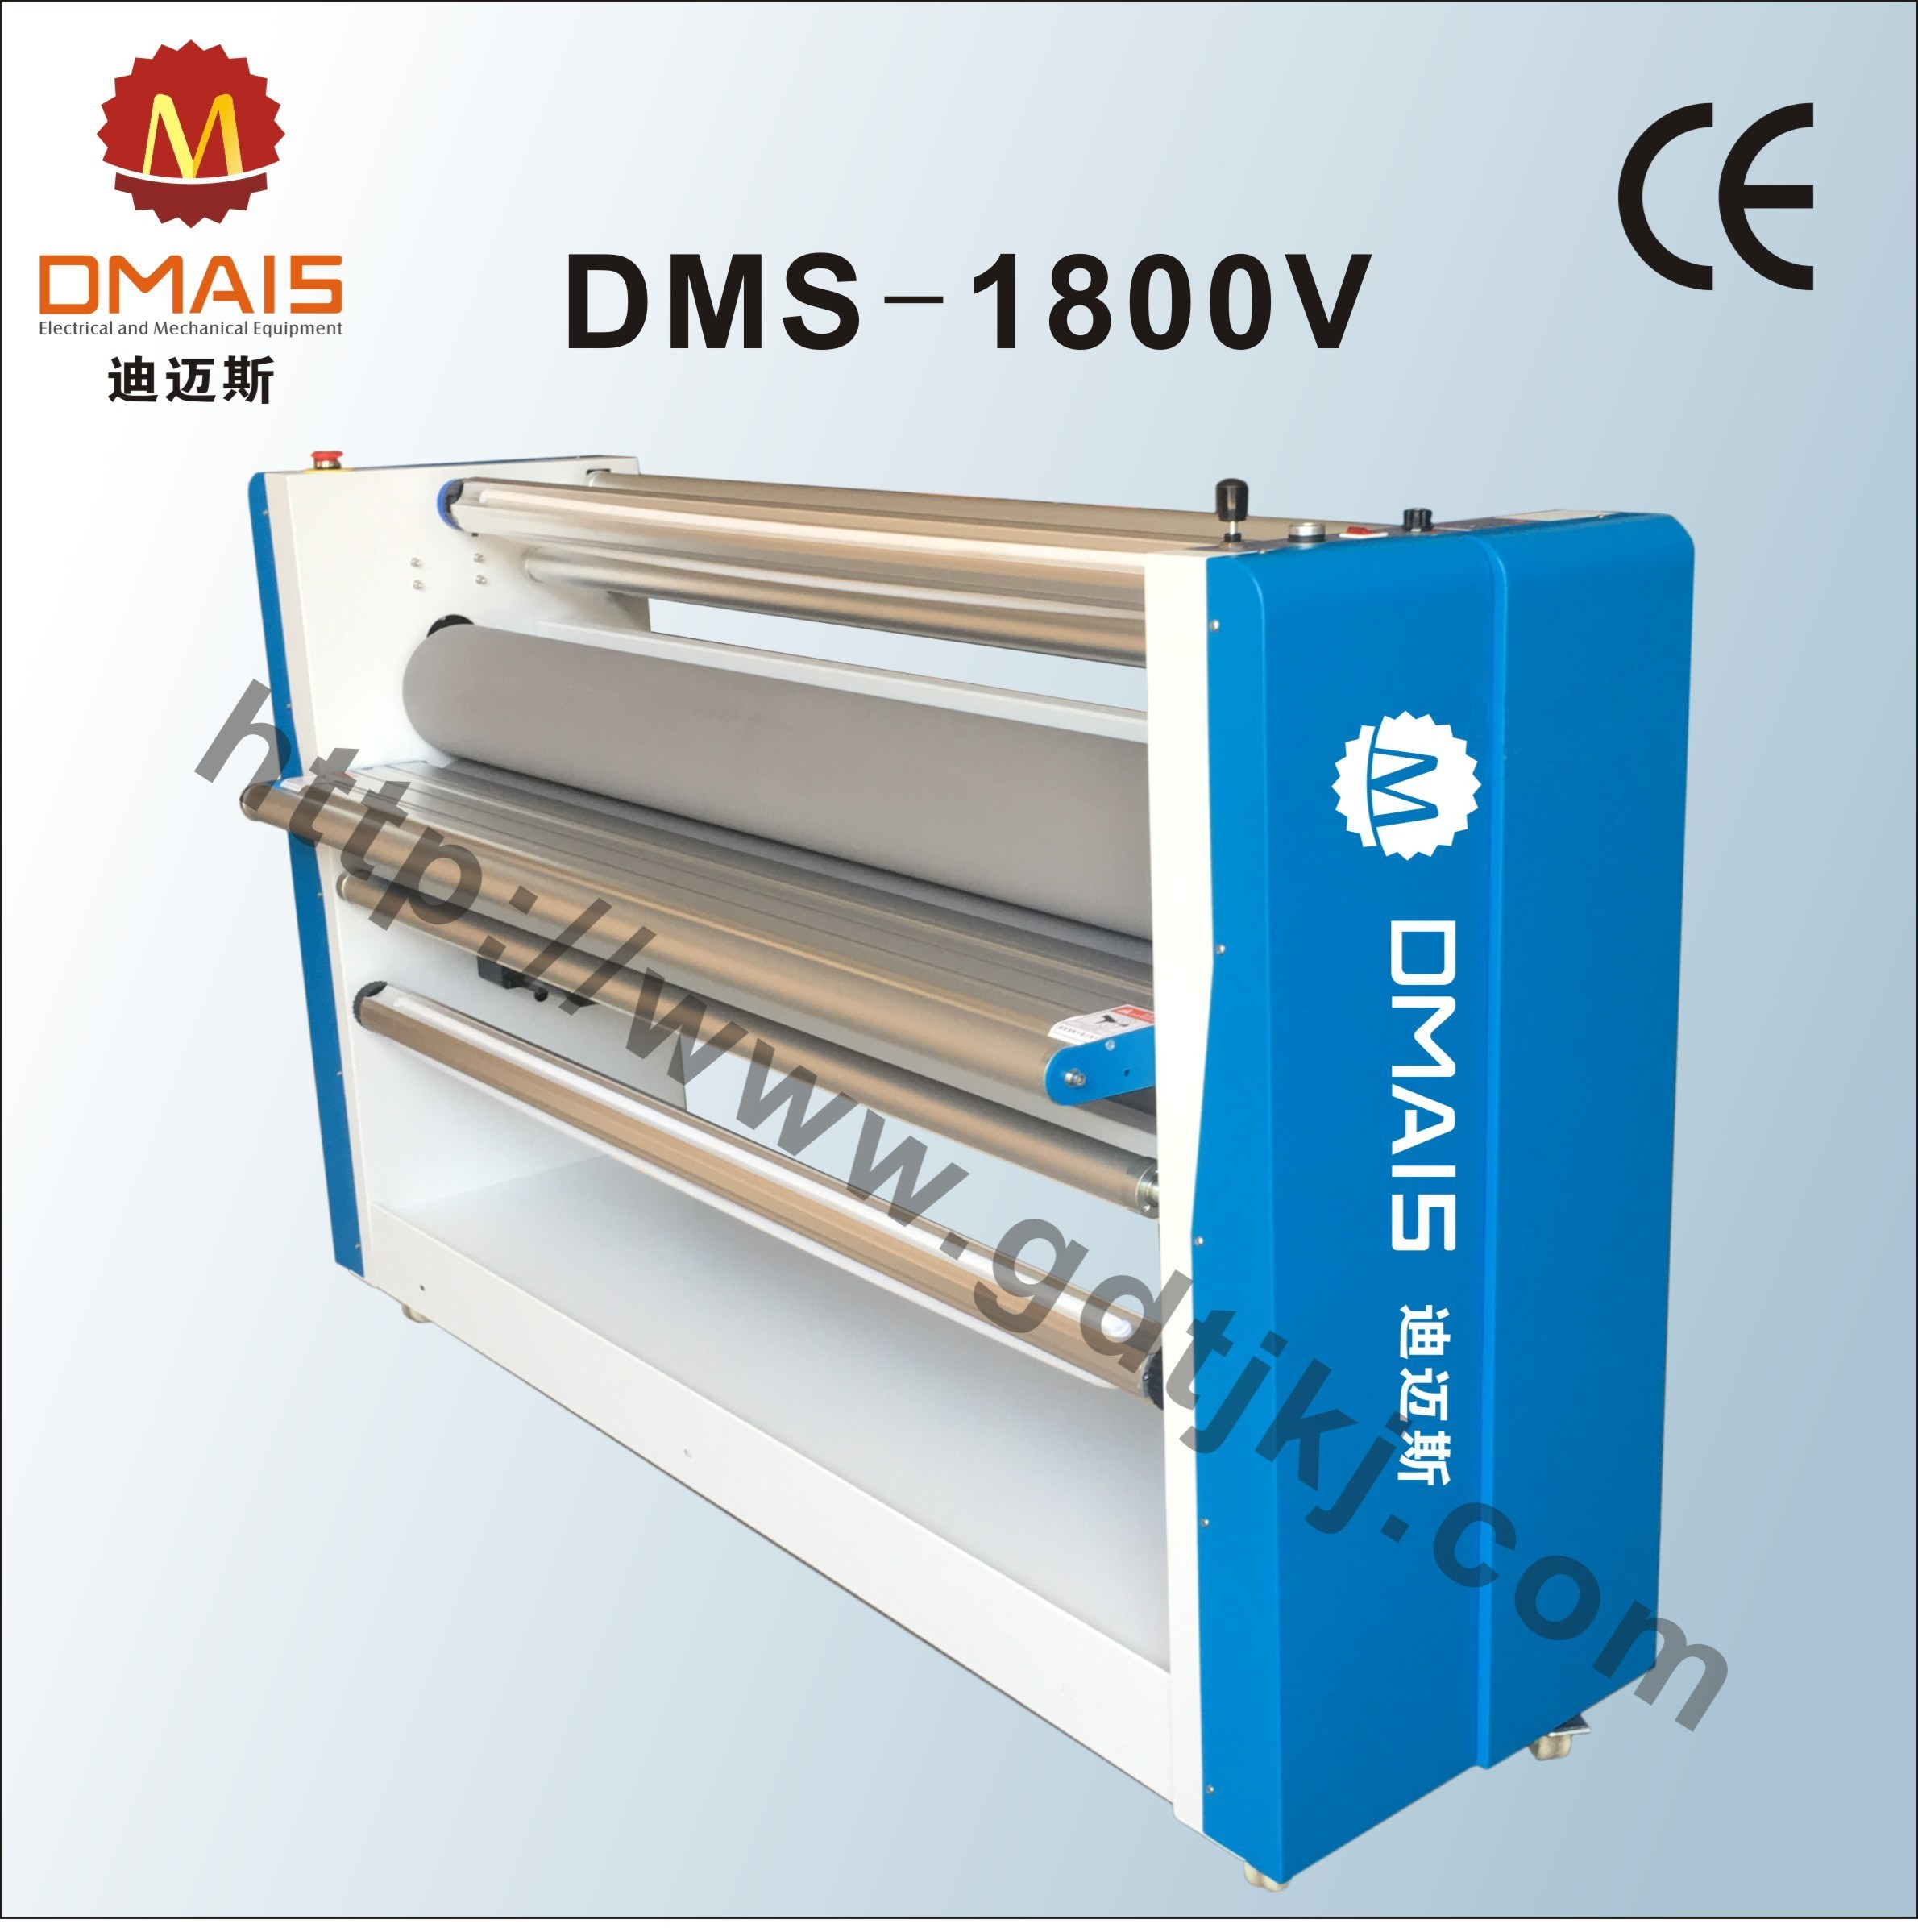 DMS-1800V Automatic Linerless Film Laminating Machine